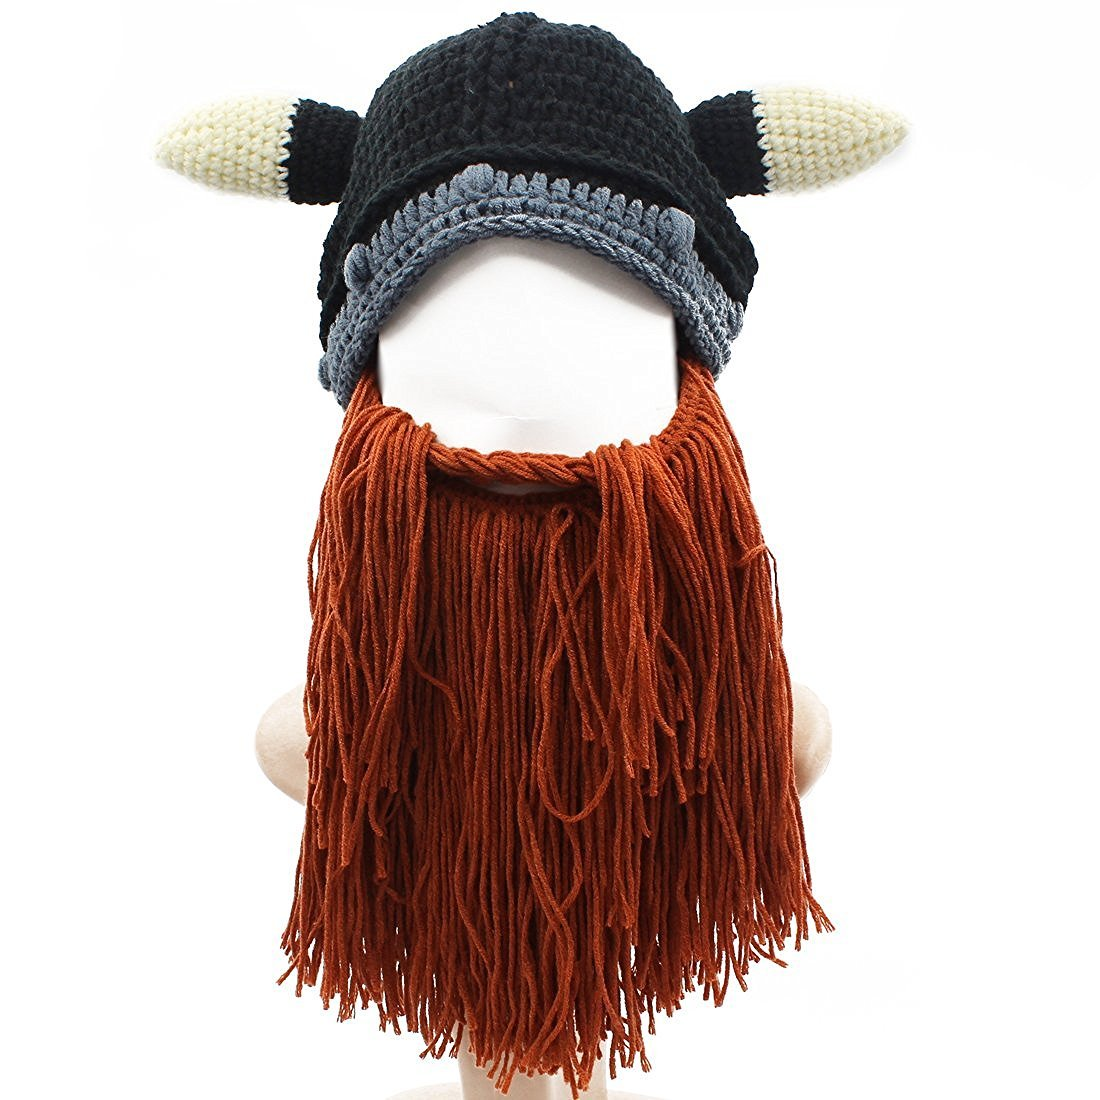 Jenny Shop Men's Funny Bull Cow Horn Cosplay Head Beanie Knit Viking Original Foldaway Beard/Mustache Hats Halloween Caps, Black